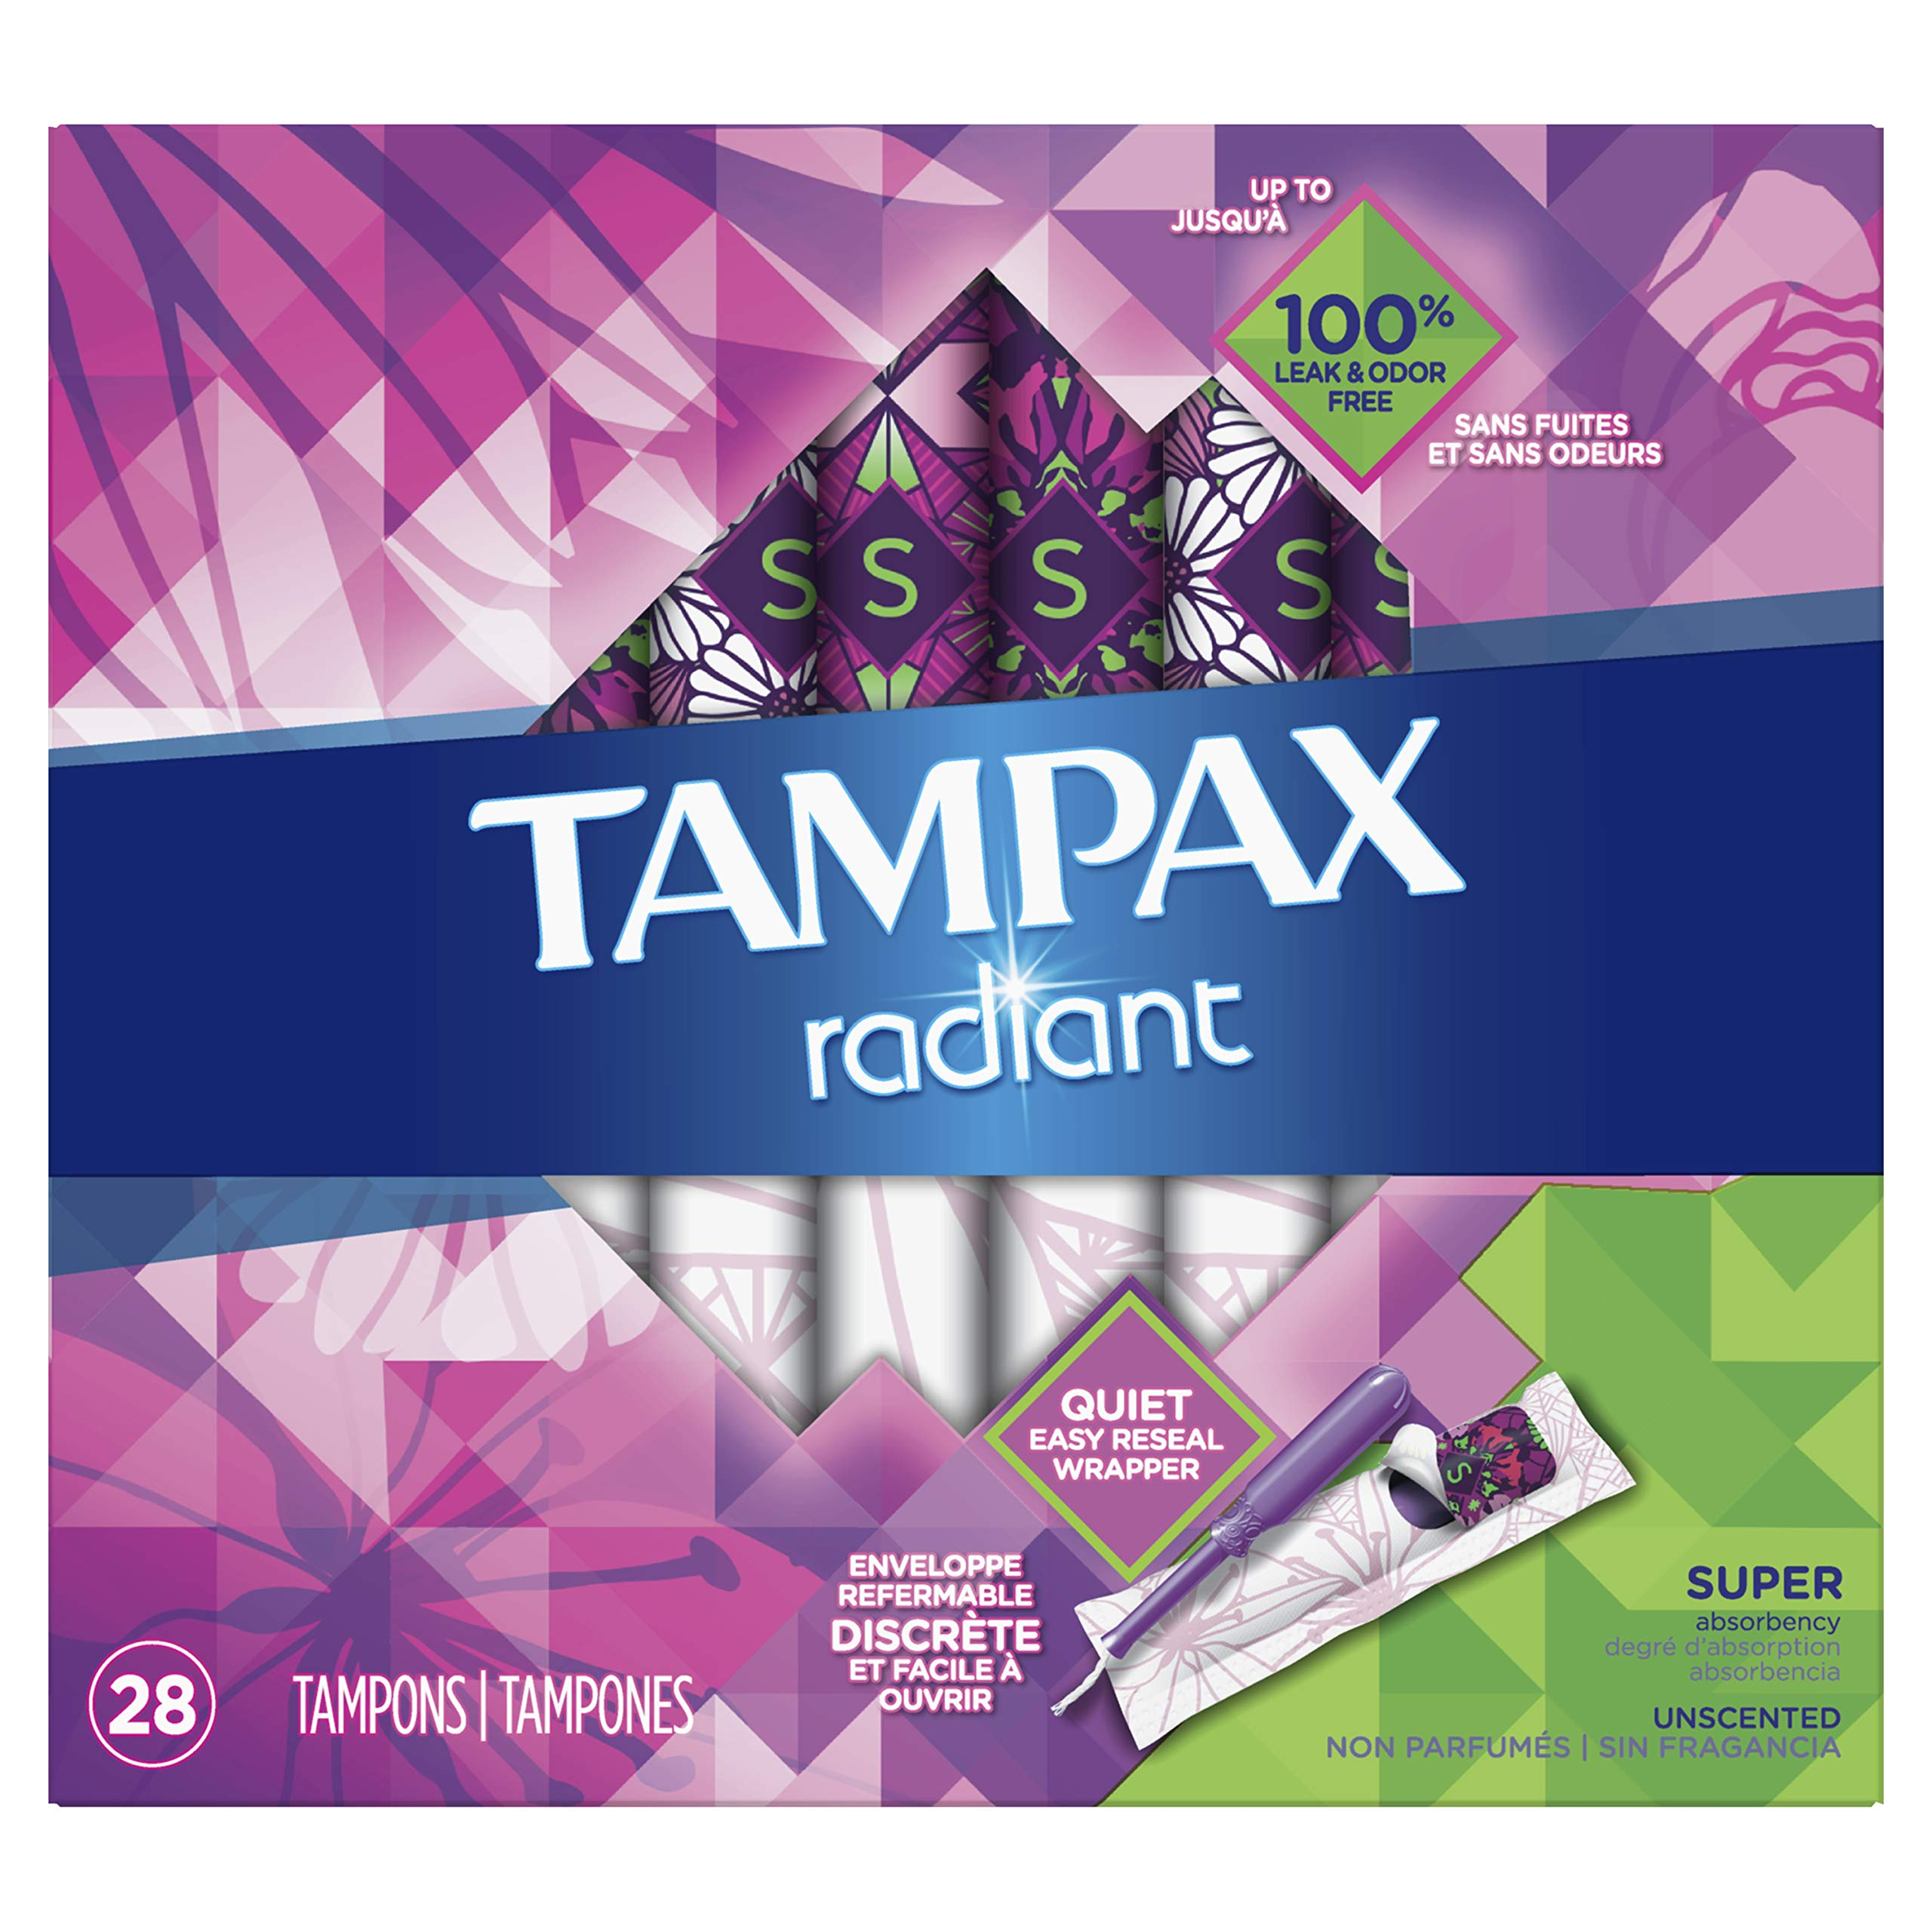 Tampax Radiant Plastic Tampons, Super Absorbency, Unscented, 28 Count, Pack of 6 (Packaging May Vary) by Tampax